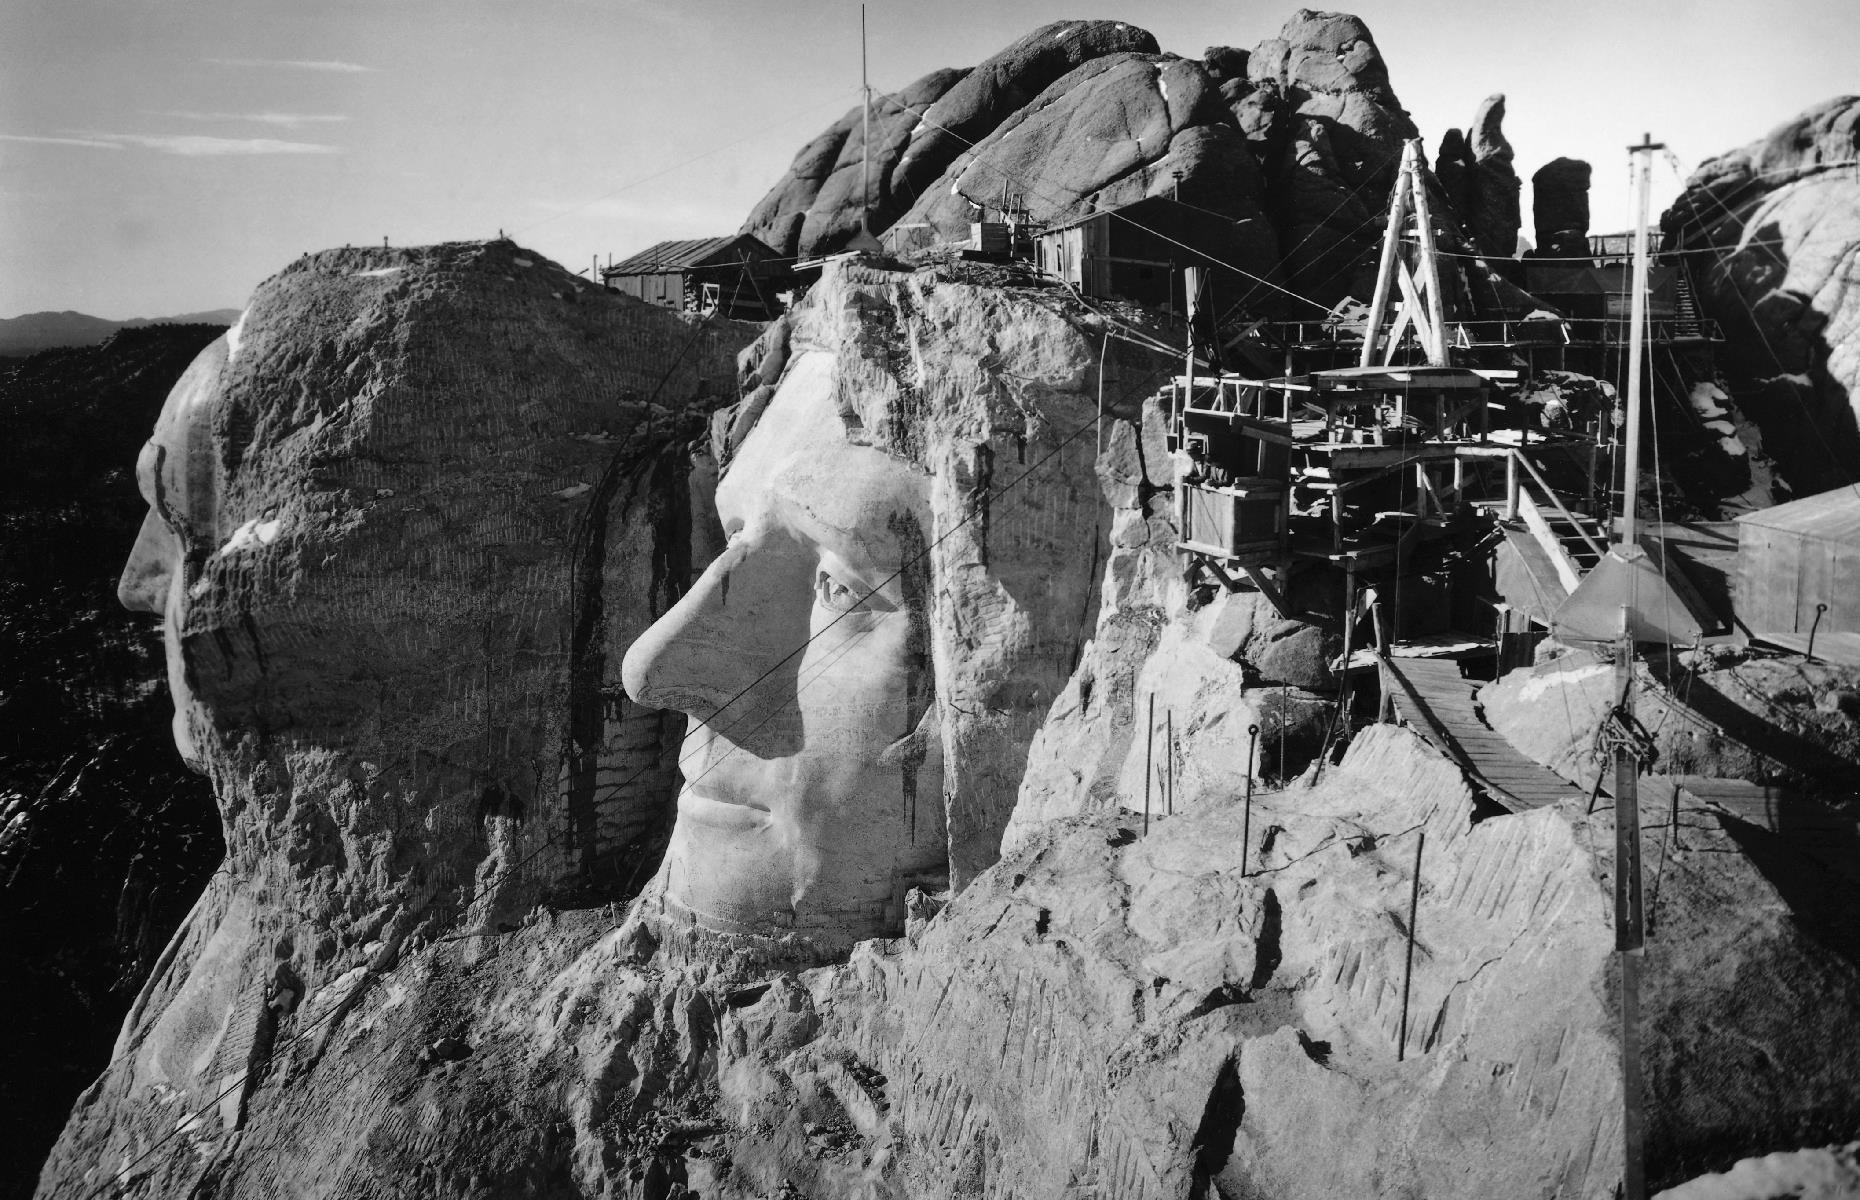 Slide 33 of 51: The monument to four presidents of America – George Washington, Thomas Jefferson, Theodore Roosevelt and Abraham Lincoln – was carved into the rock in South Dakota's Black Hills region between 1927 and 1941. Pictured here during construction in 1940 is the profile of Jefferson and the outline of Washington in the distance, as seen from the top ofLincoln's head. Today, Mount Rushmore is a popular landmark usually receiving around two million visitors a year. Check out the hidden secrets of this and other American tourist attractions here.